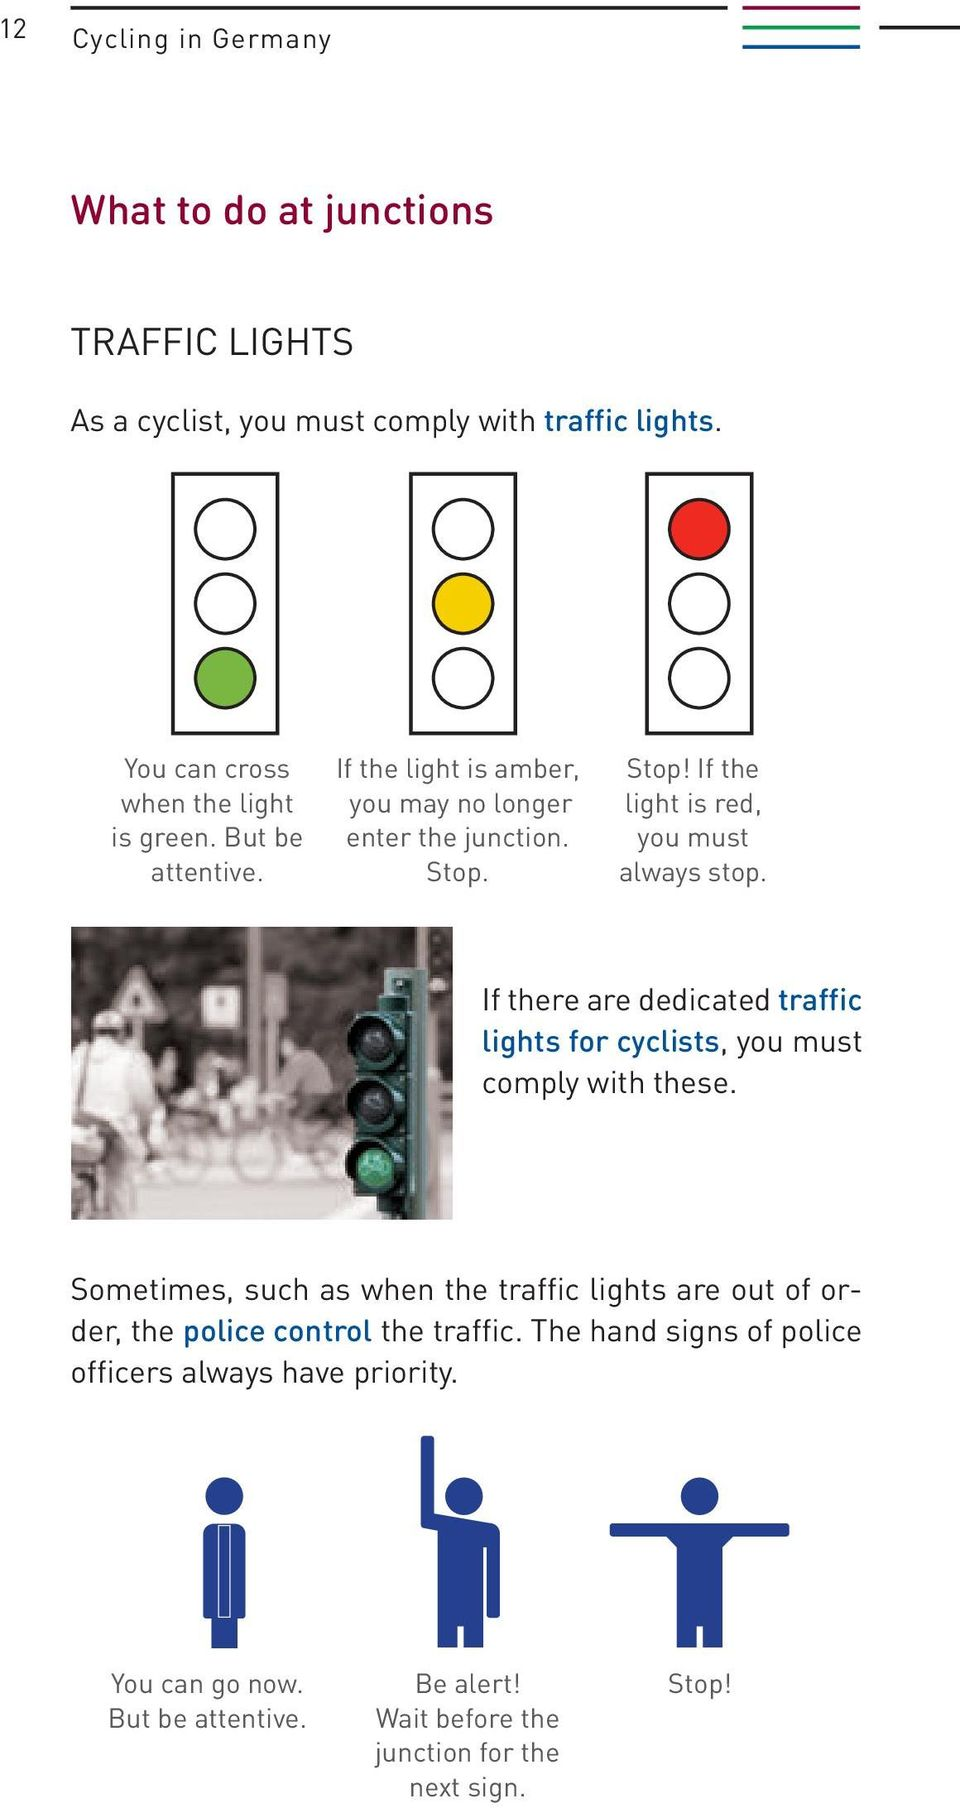 If there are dedicated traffic lights for cyclists, you must comply with these.